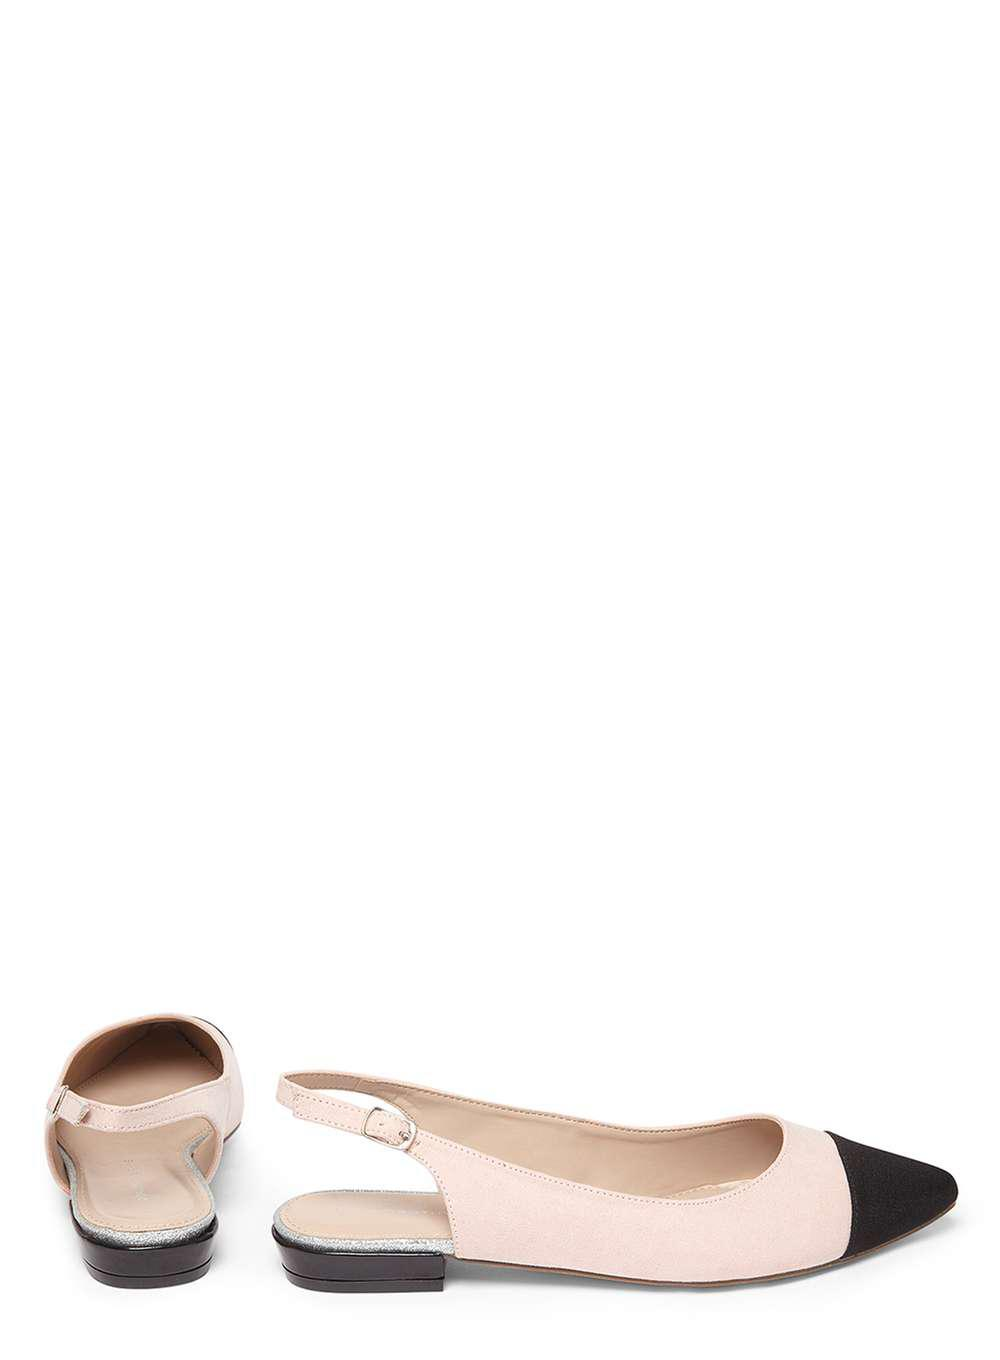 47dcf011f9ec Lyst - Dorothy Perkins Nude  hobby  Slingback Shoes in Pink